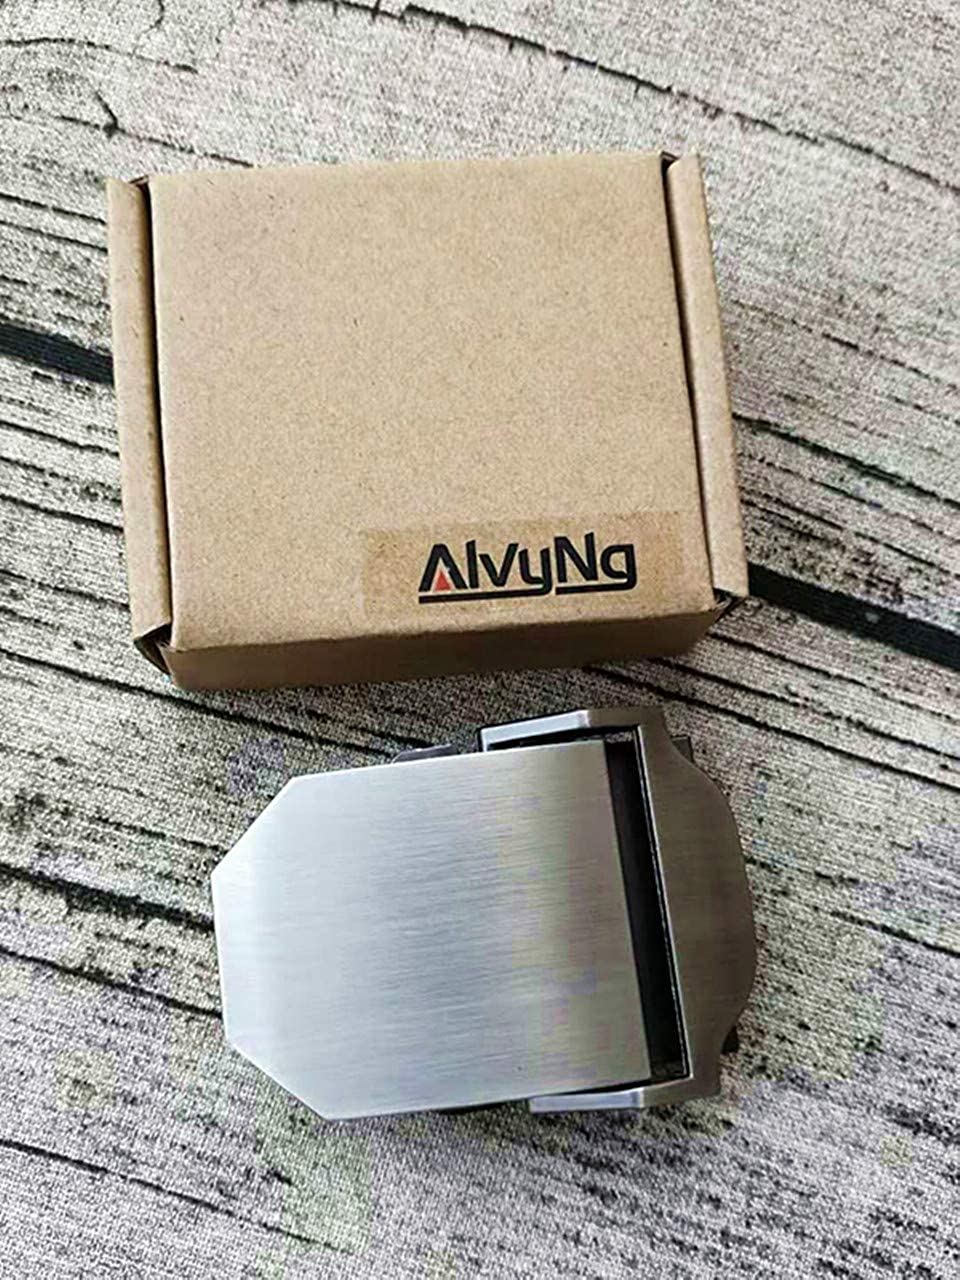 ALVYNG Mens Belt Buckles Military Automatic Adjustable Metal Buckle 1 1//2 38mm For Canvas Belt With Gift Box